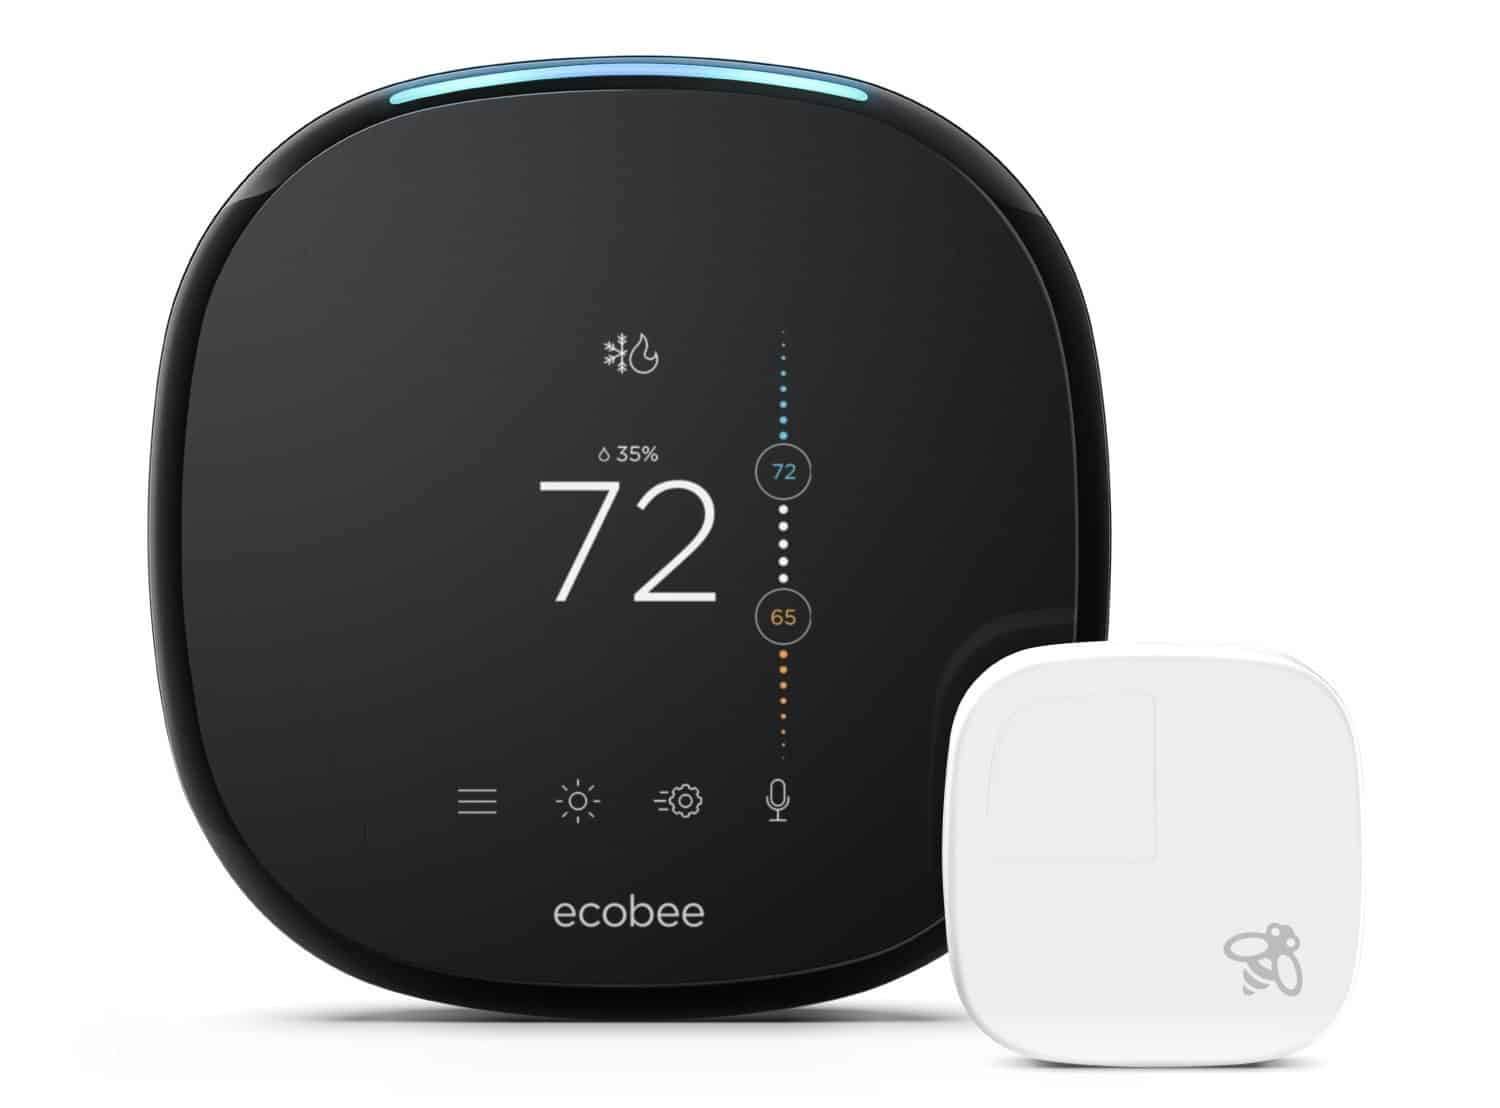 A front view of the Ecobee4 With Sensor Smart Thermostat.